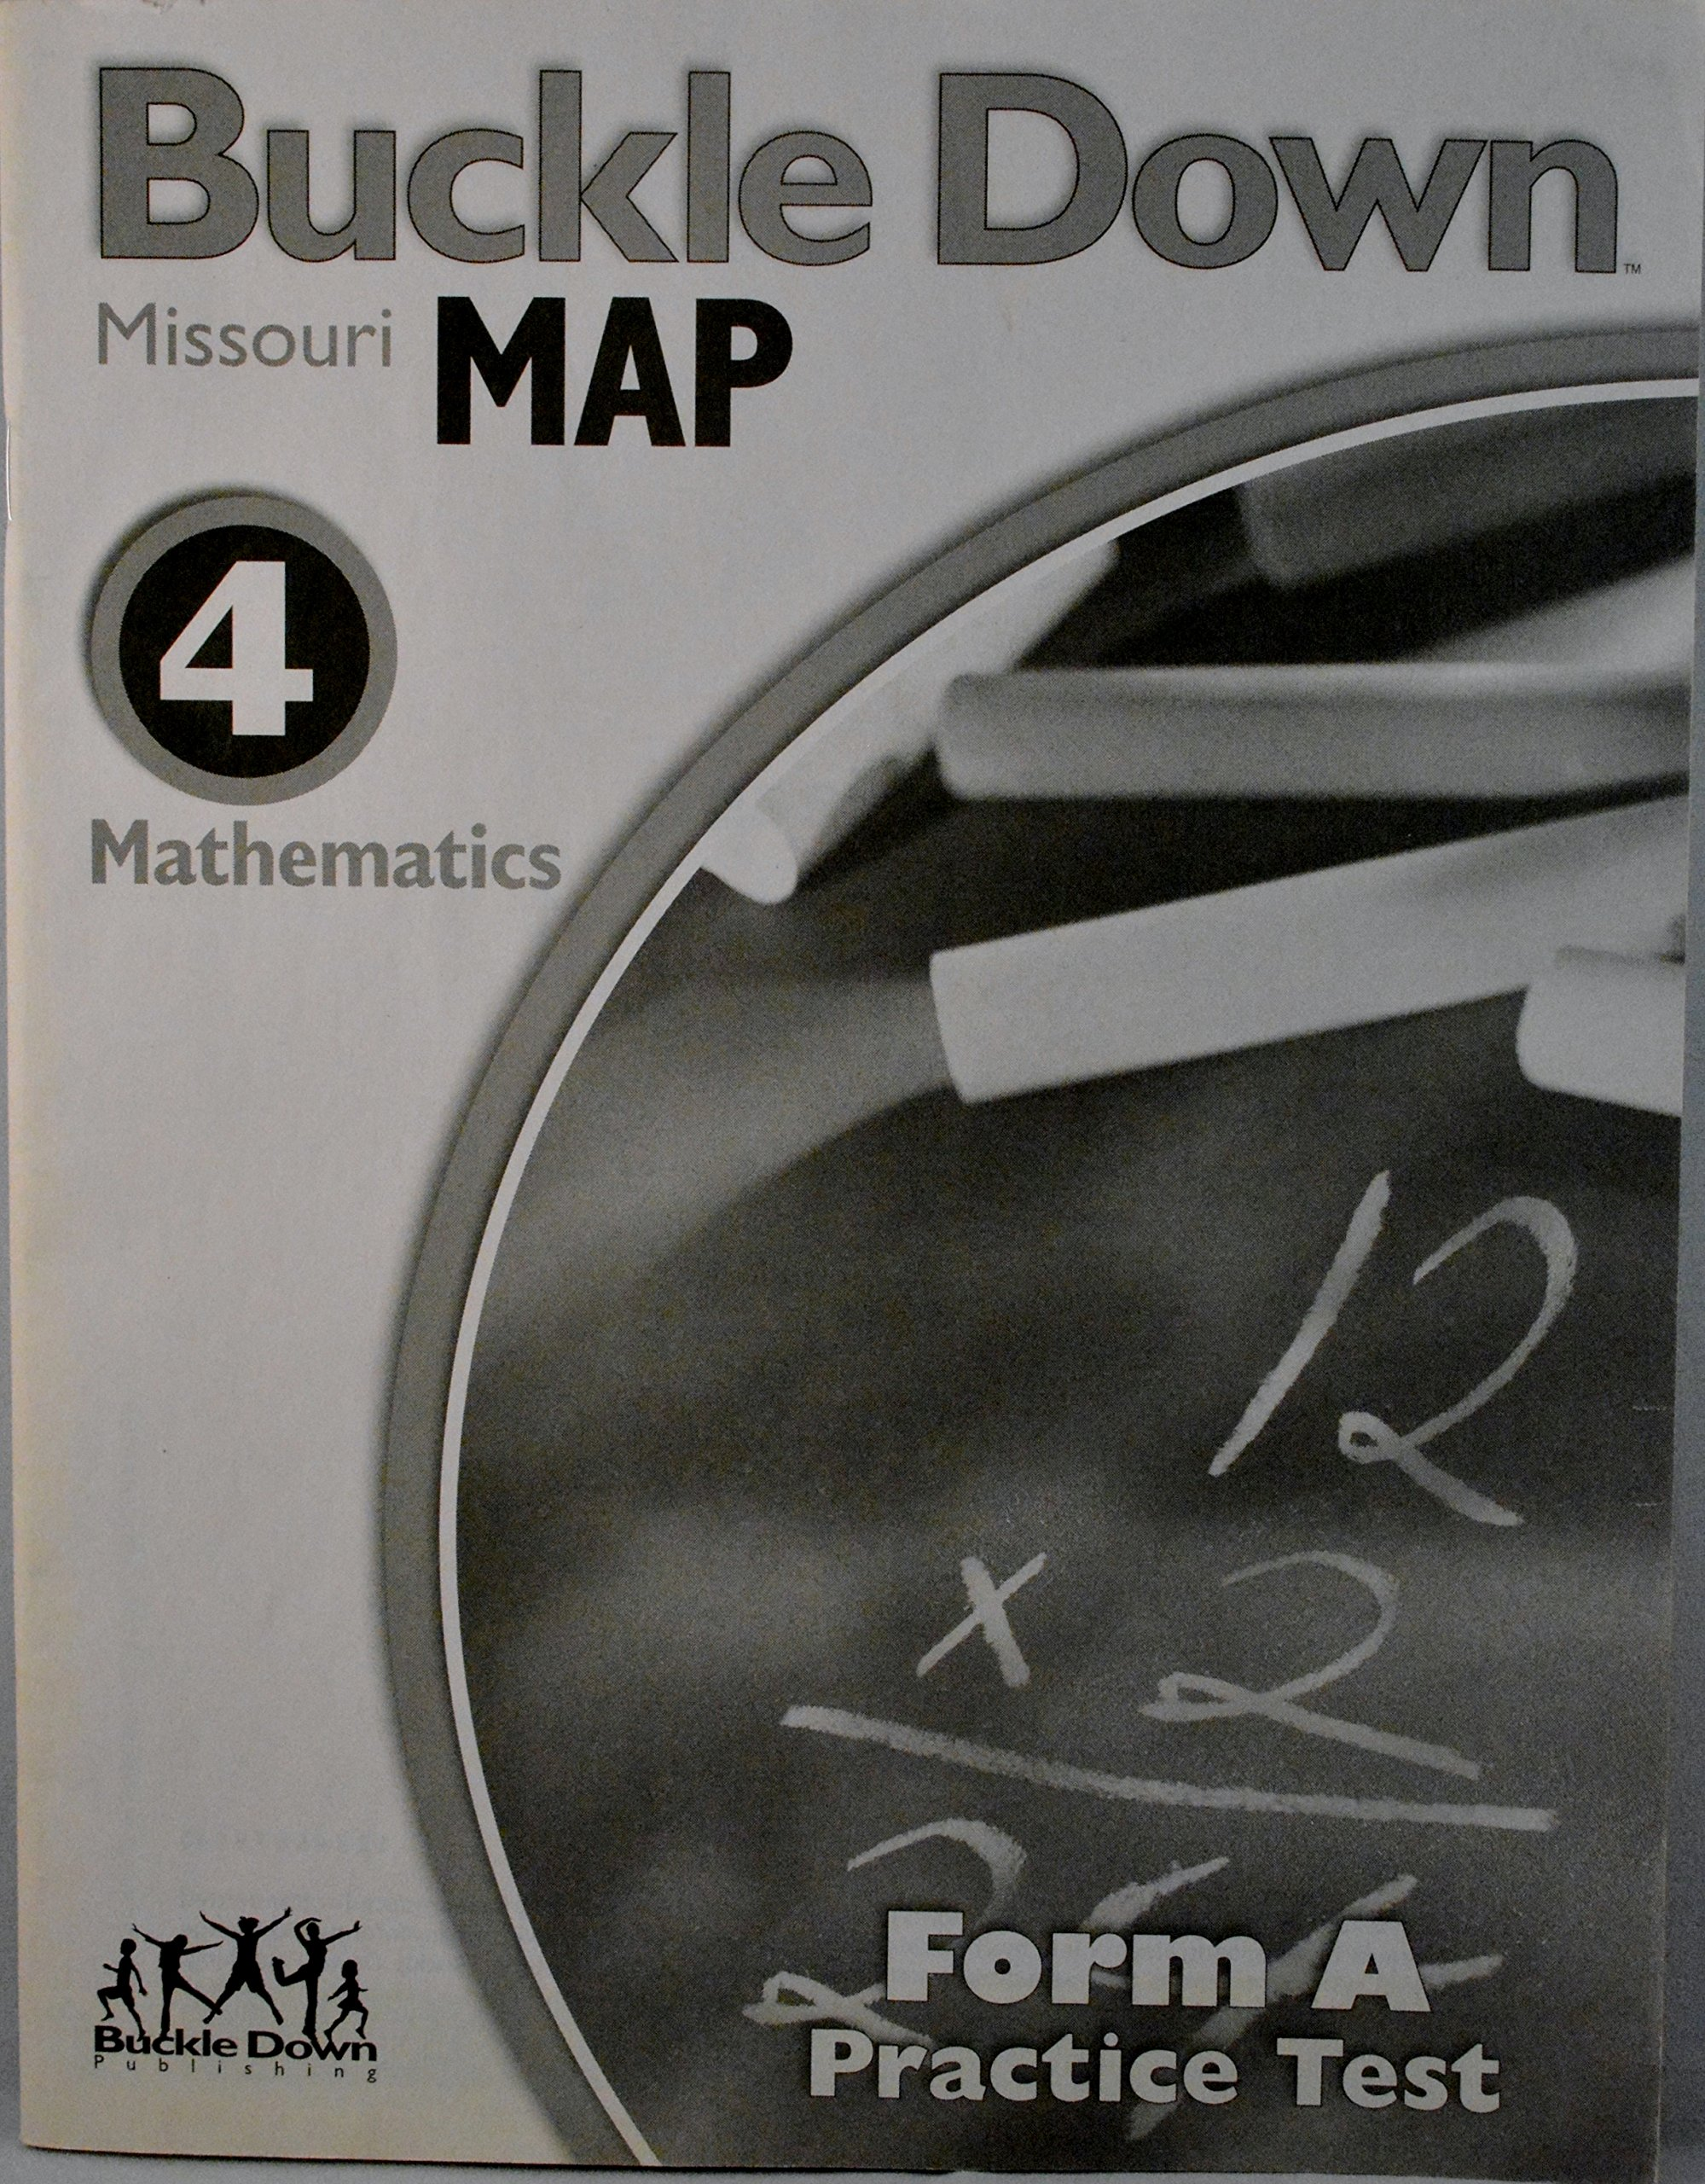 Buckle Down Missouri MAP Mathematics Form a Practice Test Steve